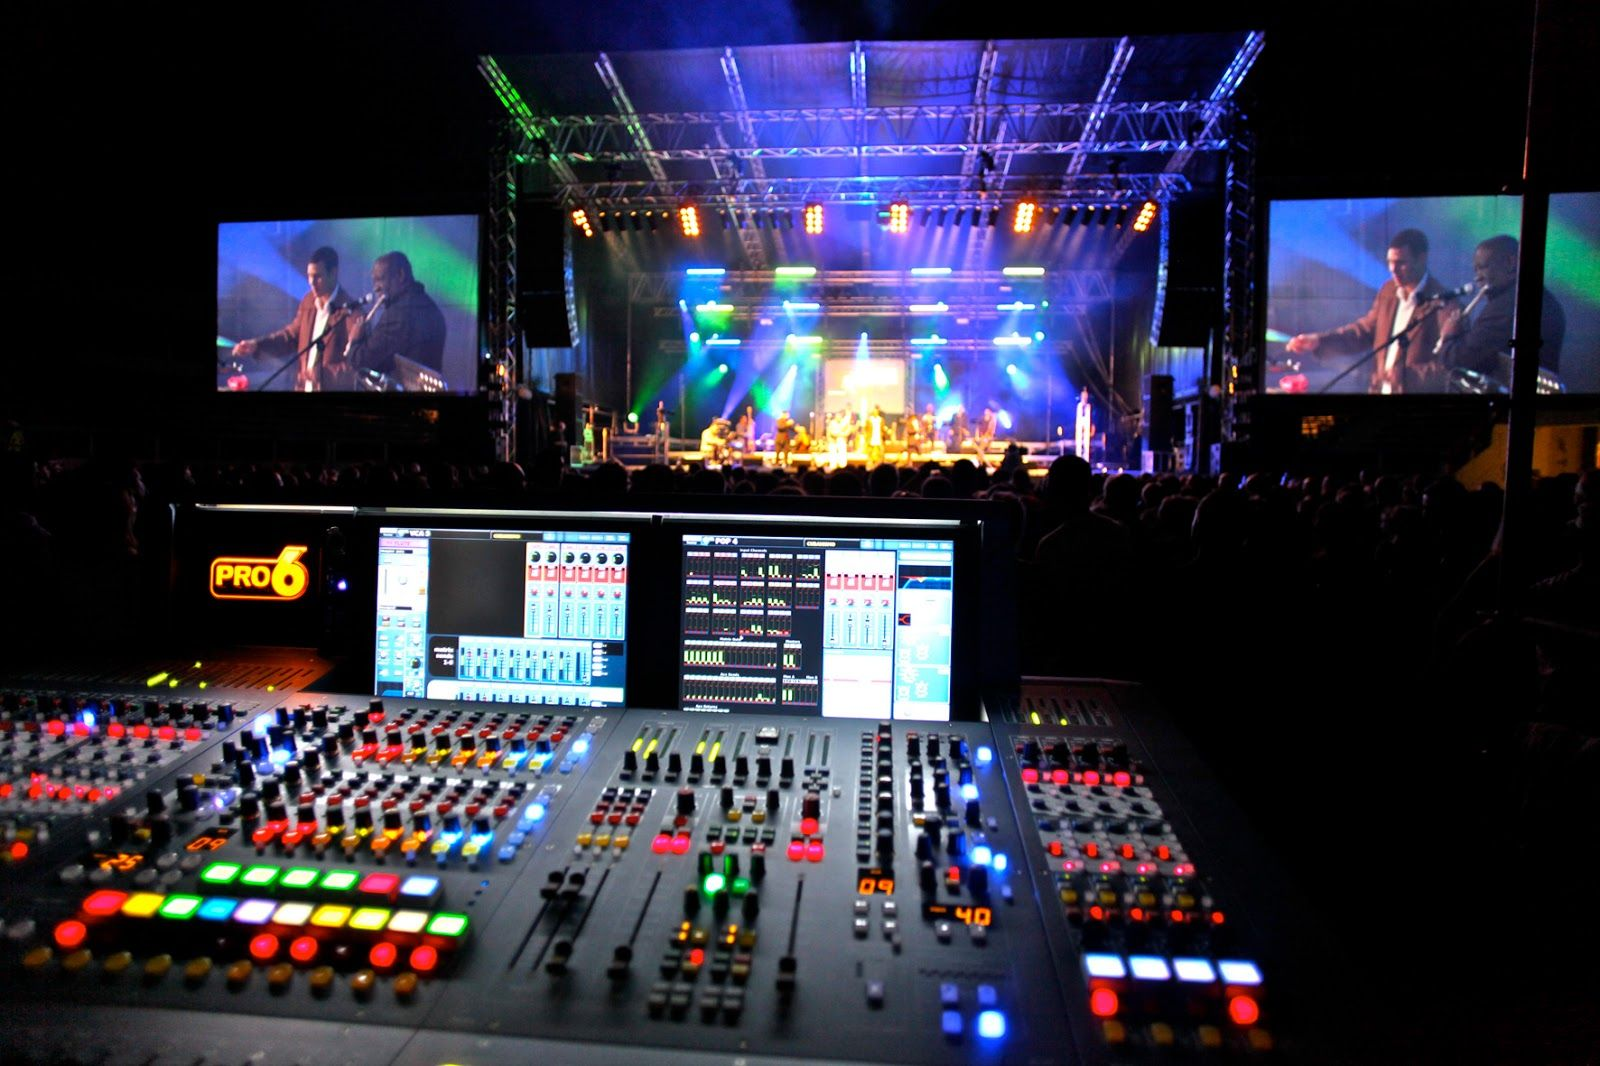 Why You Should Focus on the Equipment When Hiring Audio Services?